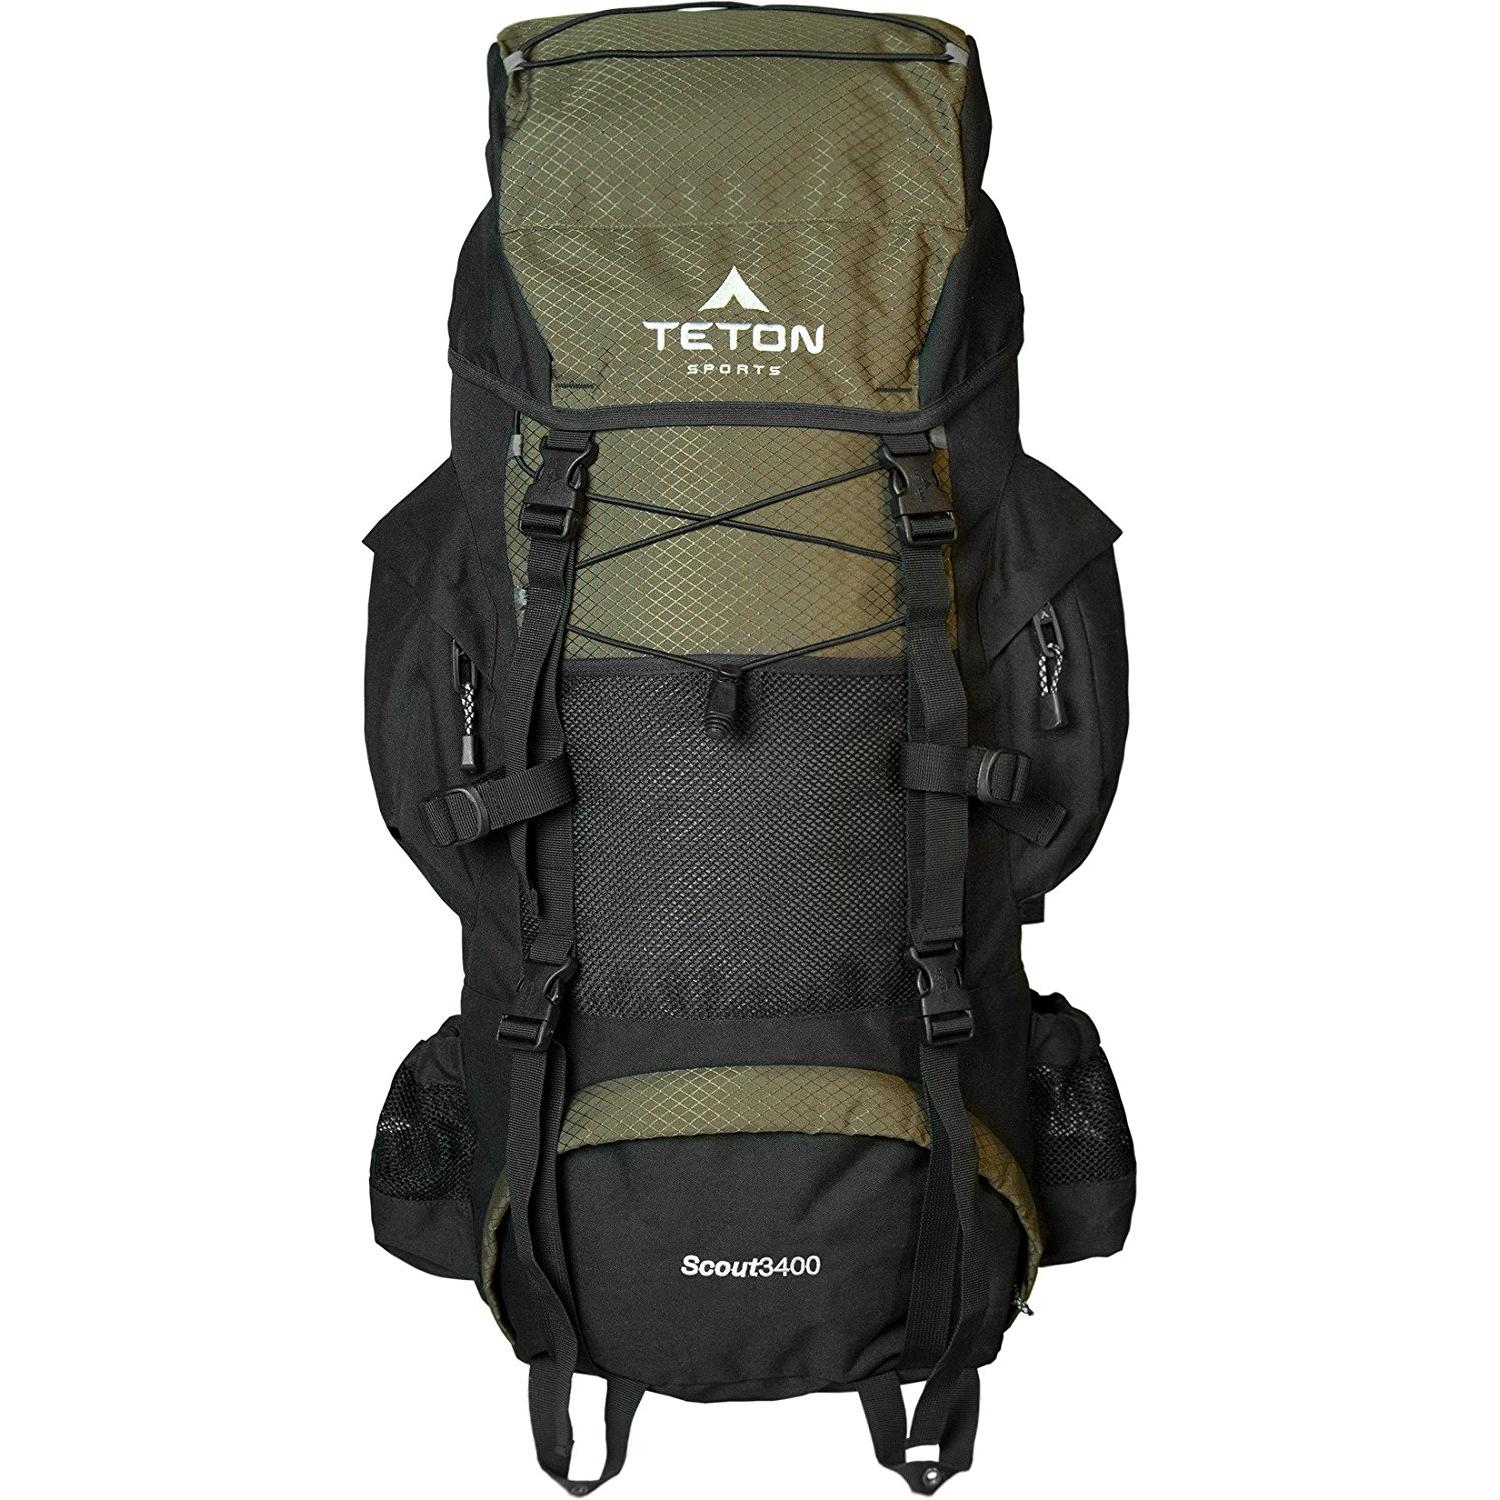 Teton Scout 3400 backpack